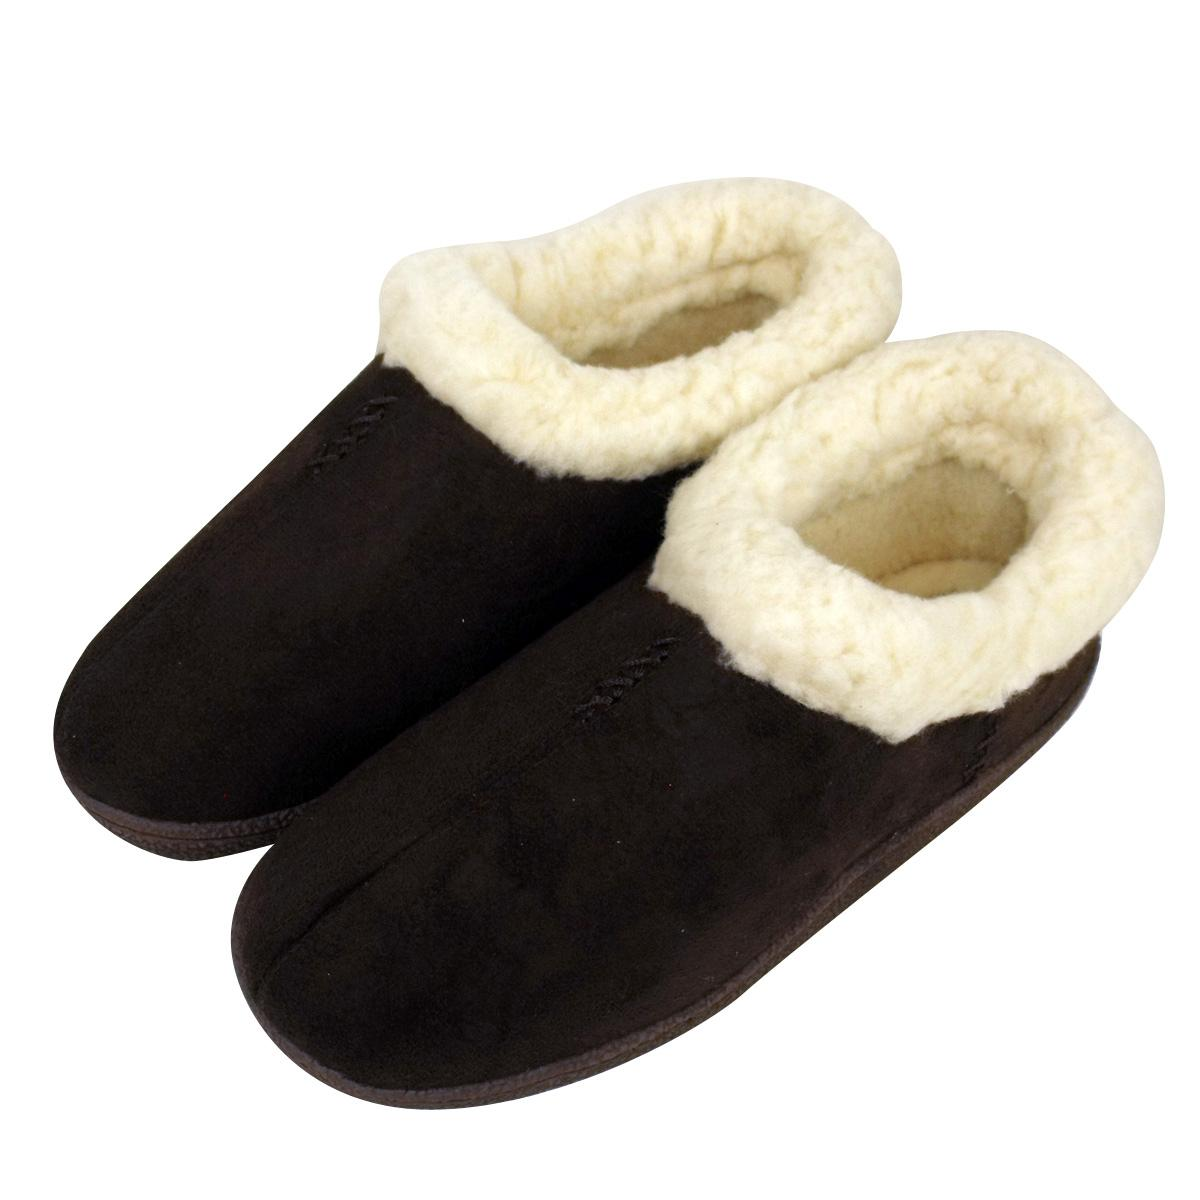 Celtic & Co. Sheepskin Slippers. For pure comfort choose our finest sheepskin slippers, now available for women, men and children and in a variety of beautiful styles and earthy colours.